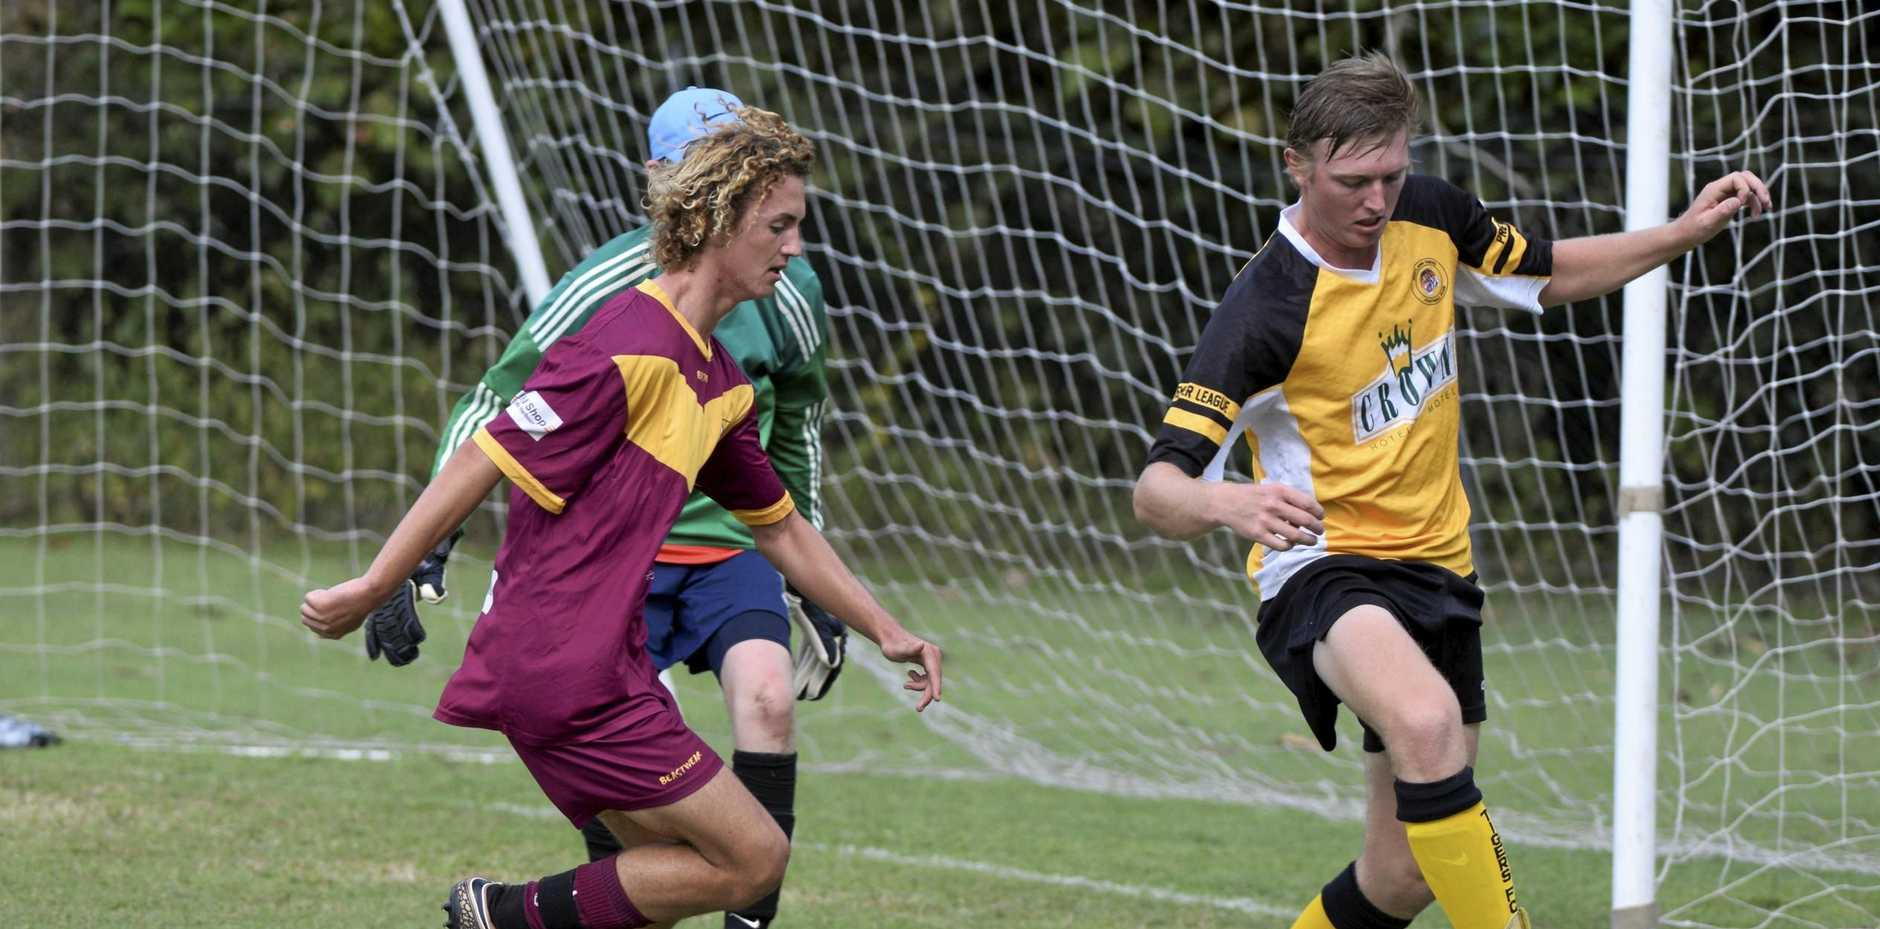 TABLES TURNED: Upsets don't come much bigger than what Westlawn Tigers performed on Urunga.